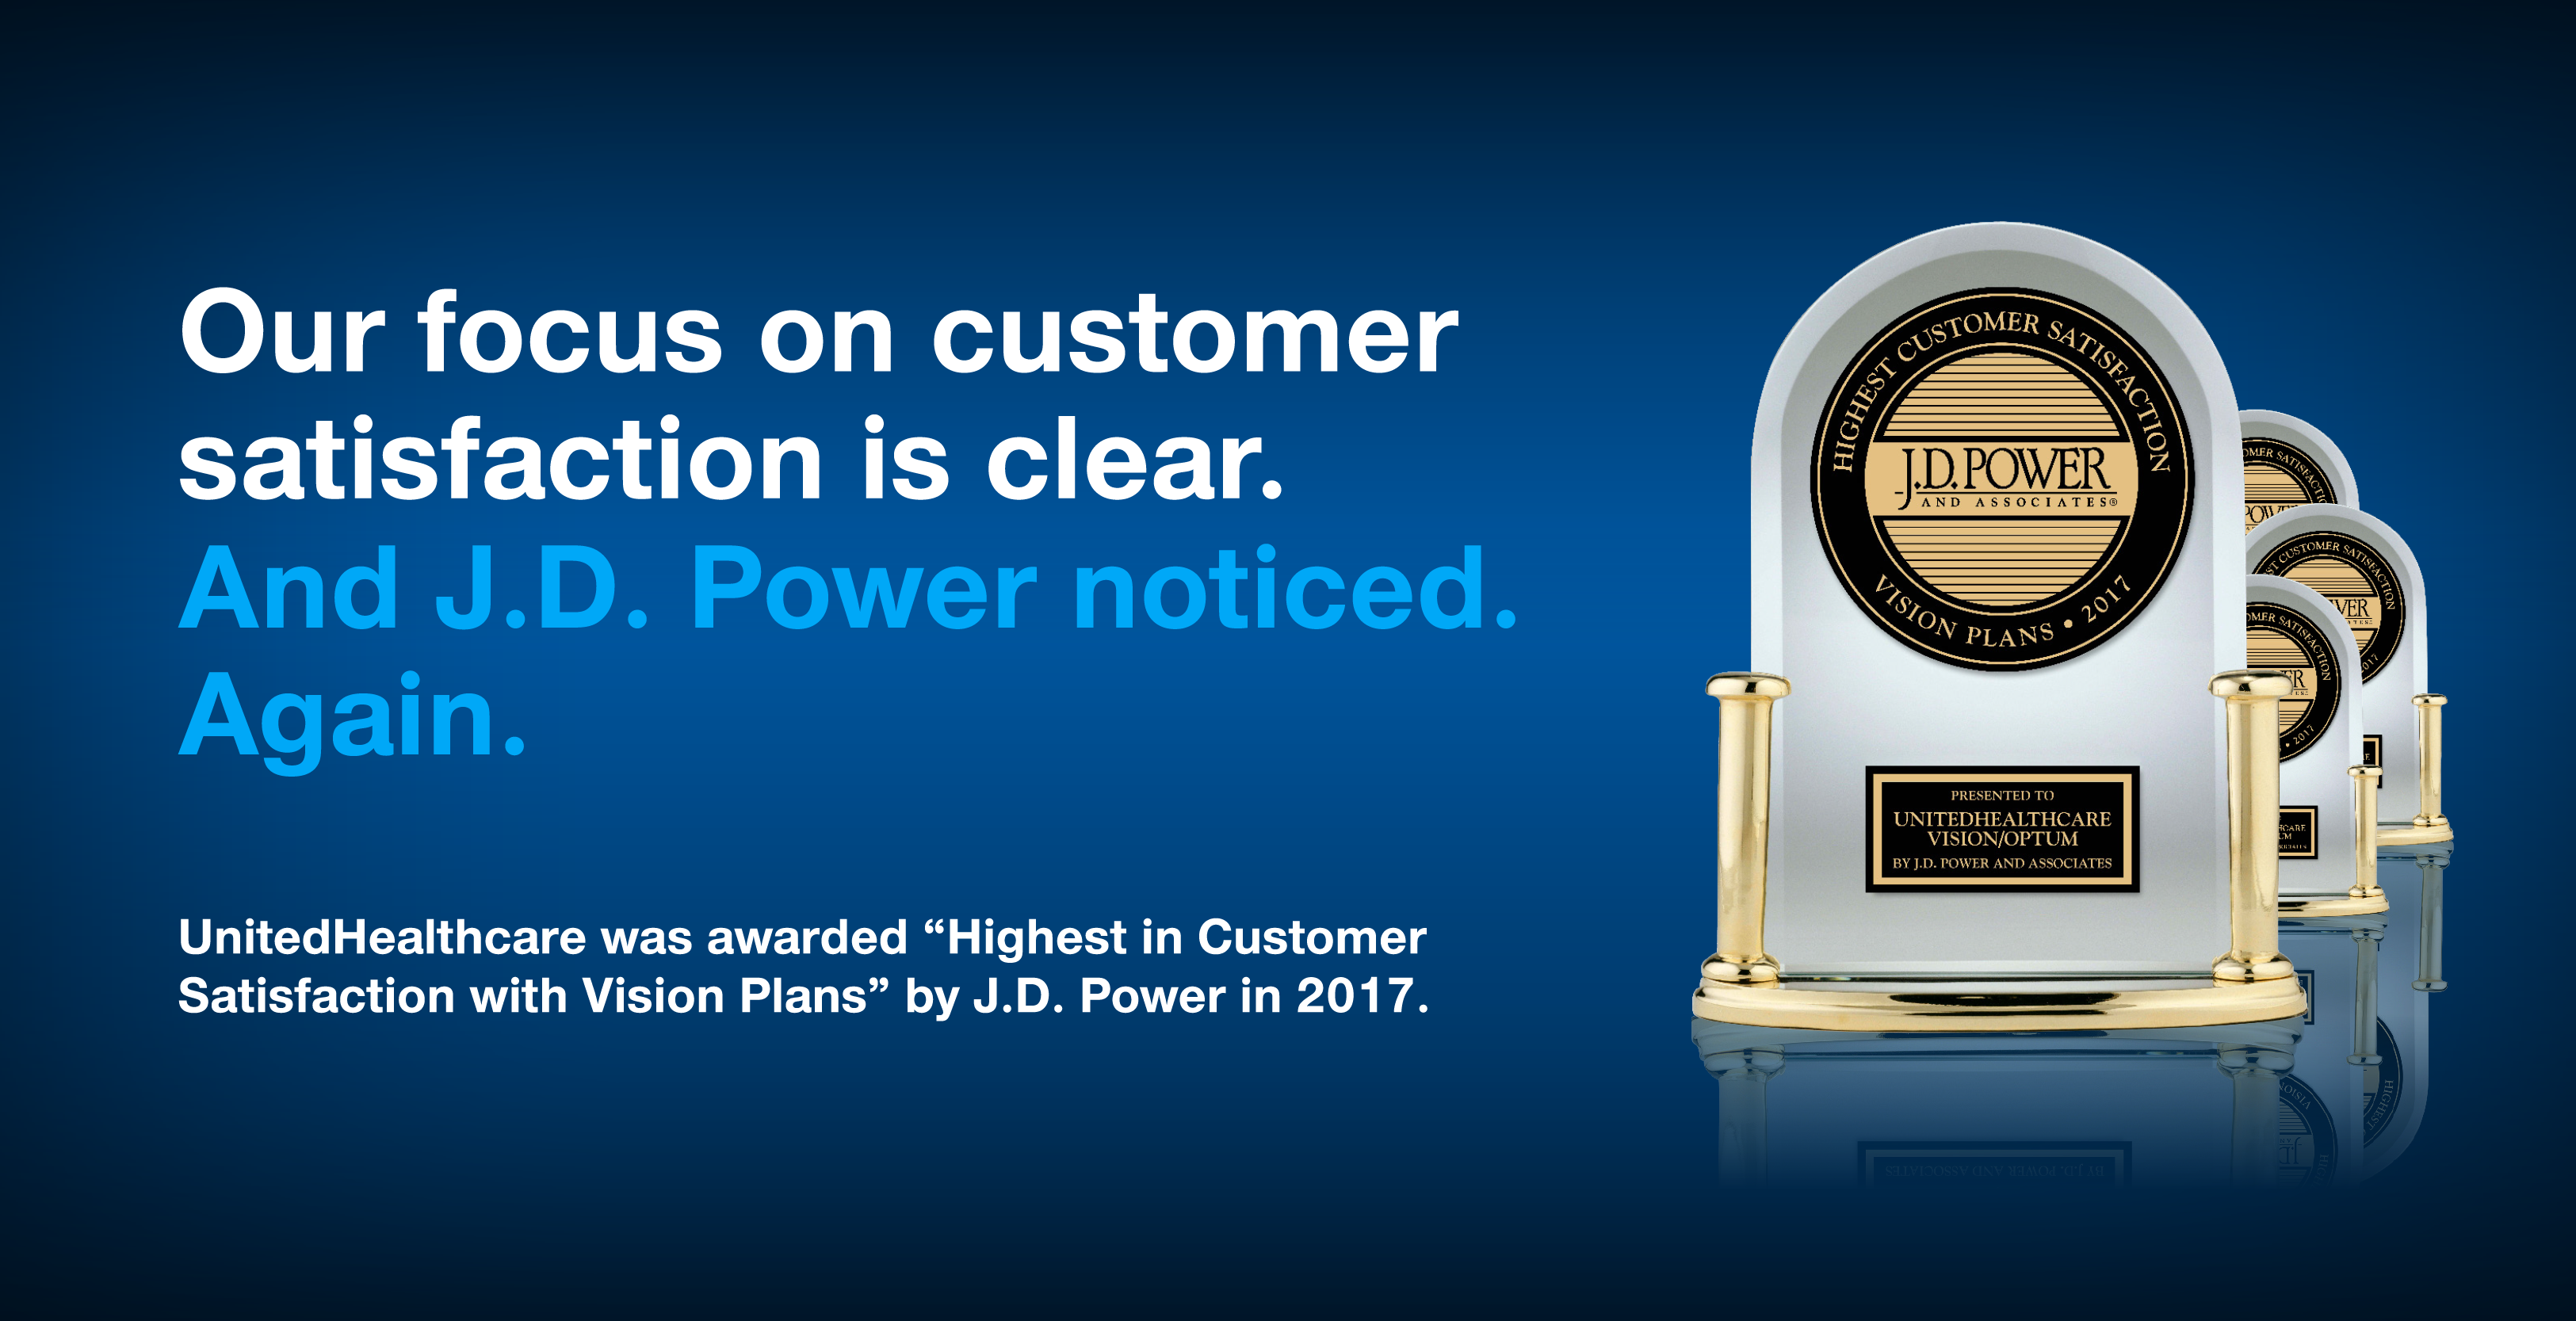 Our Focus on customer satisfaction is clear.  And J.D. Power noticed.  Again.  UnitedHealthcare was awarded